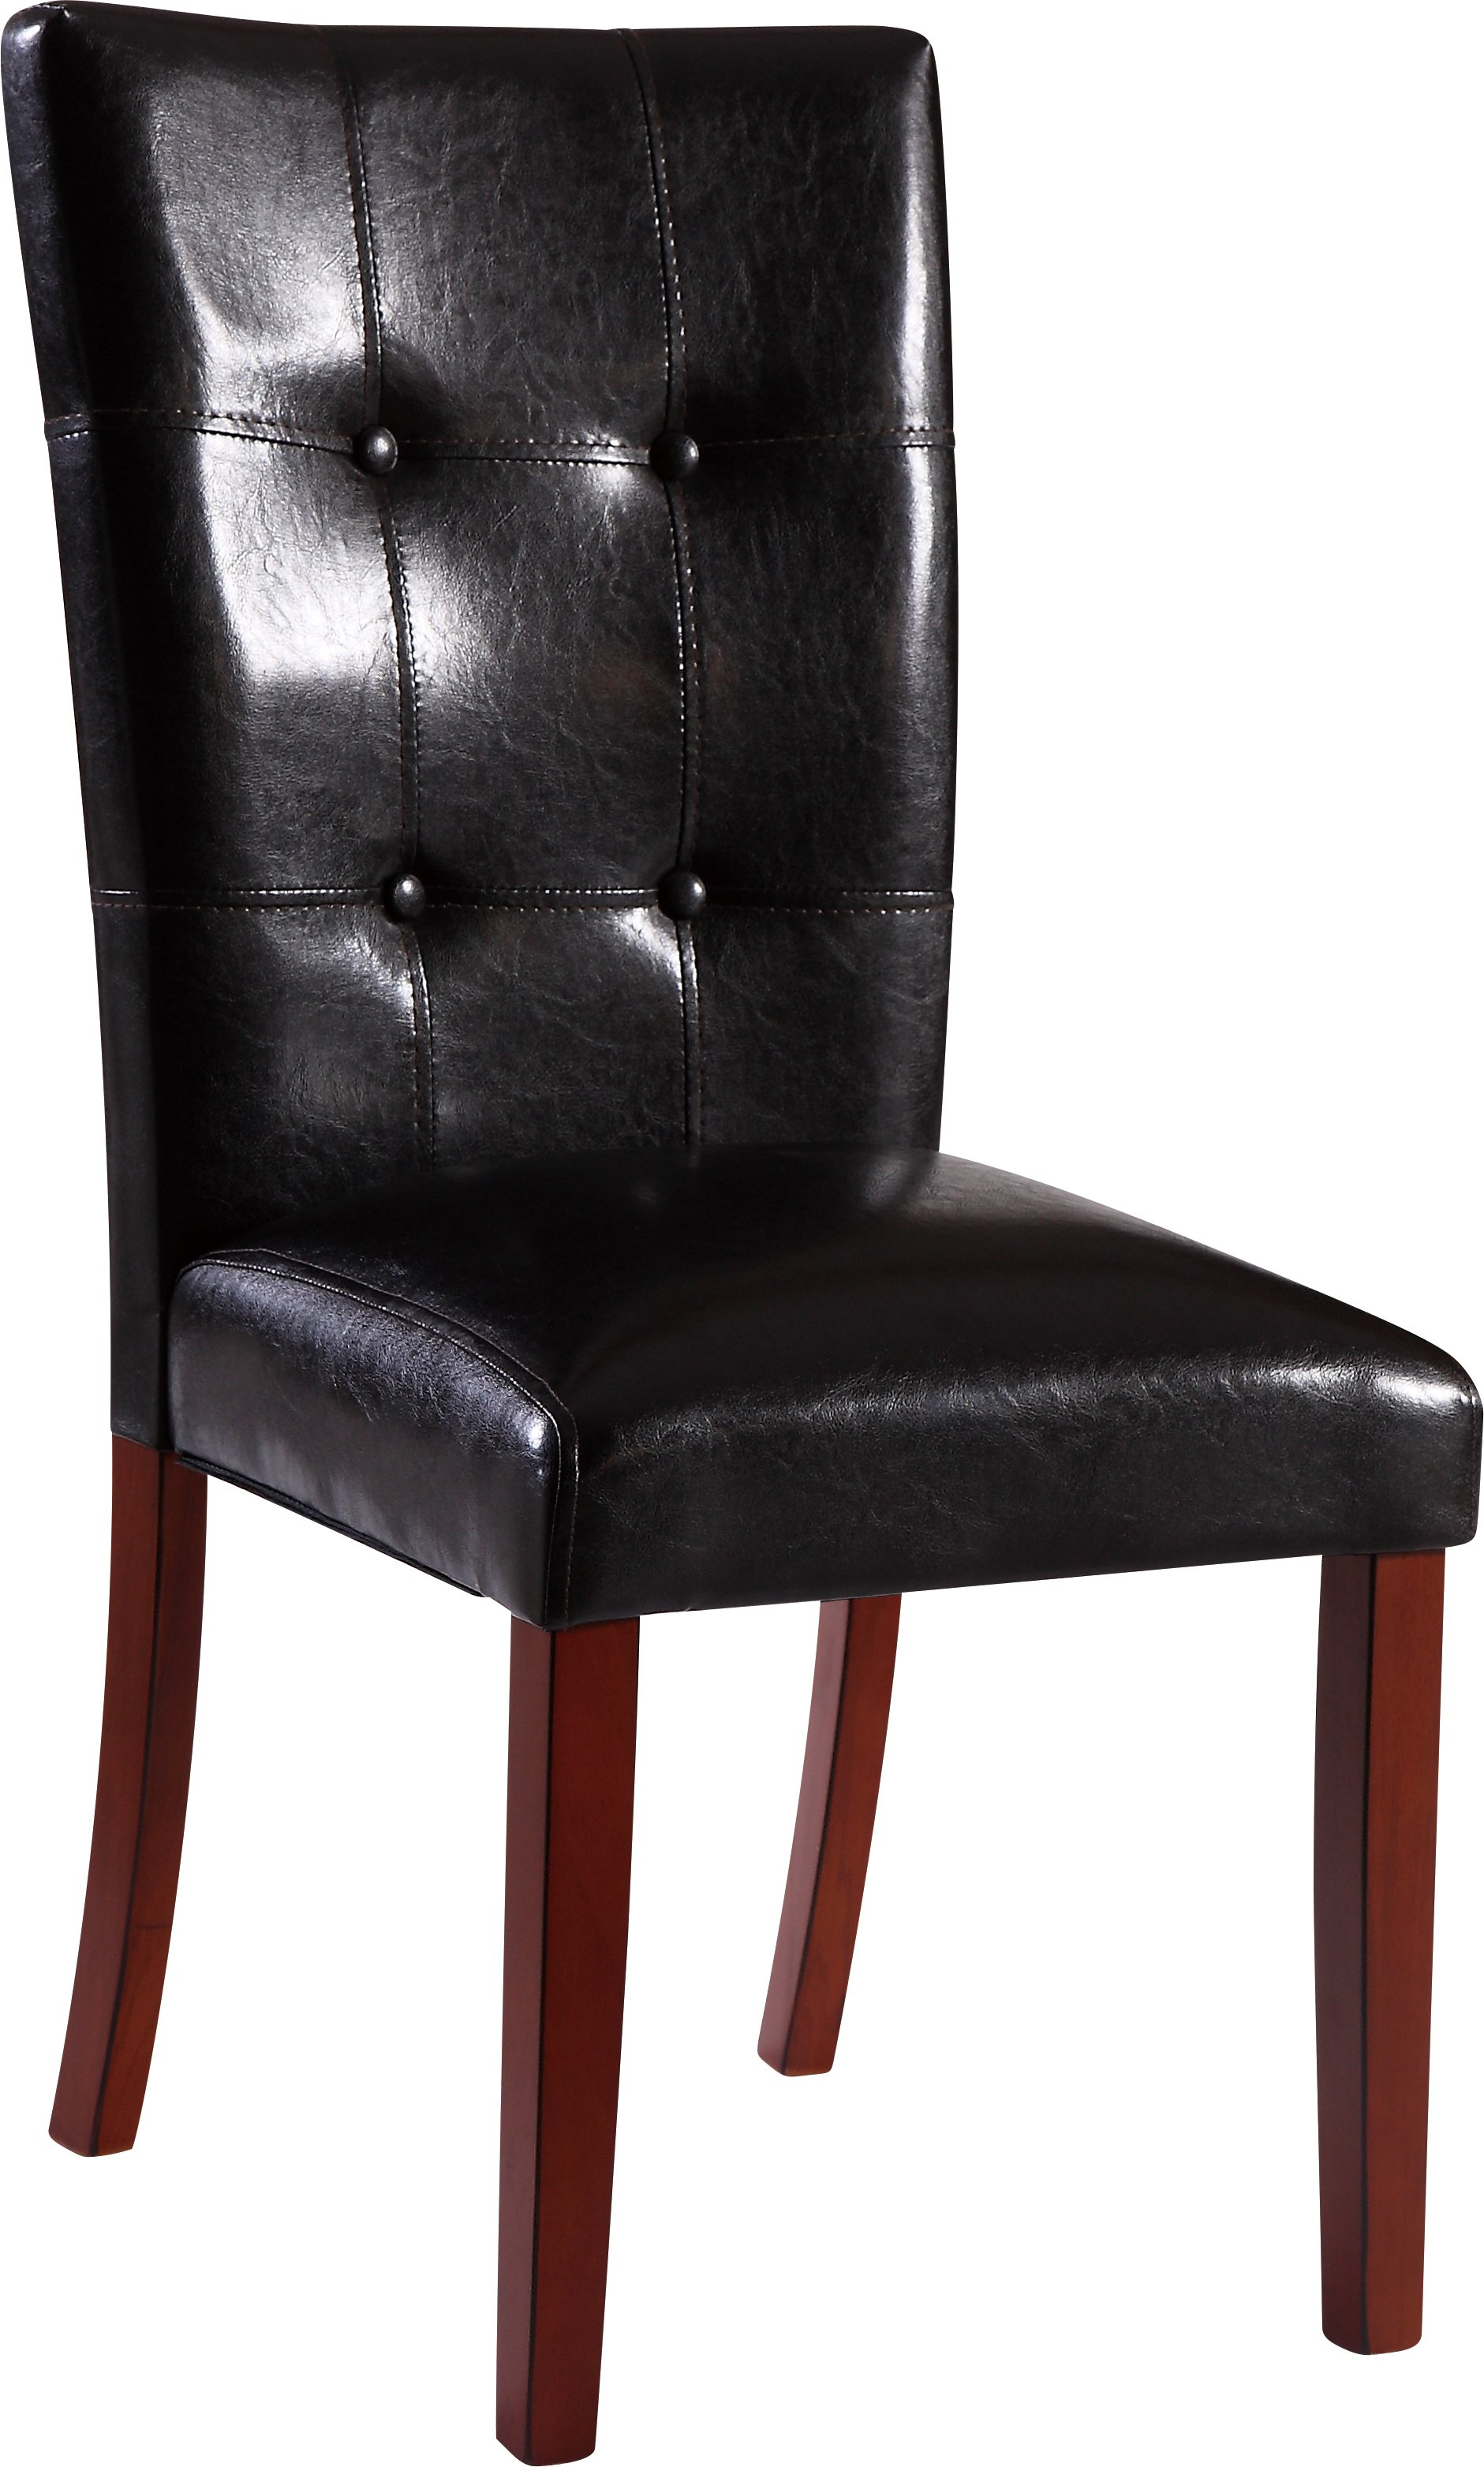 Dining Chair D3861DC Set of 2 Black PUOak Leg by Global  : D3861DC from futonland.com size 1881 x 3126 jpeg 1835kB